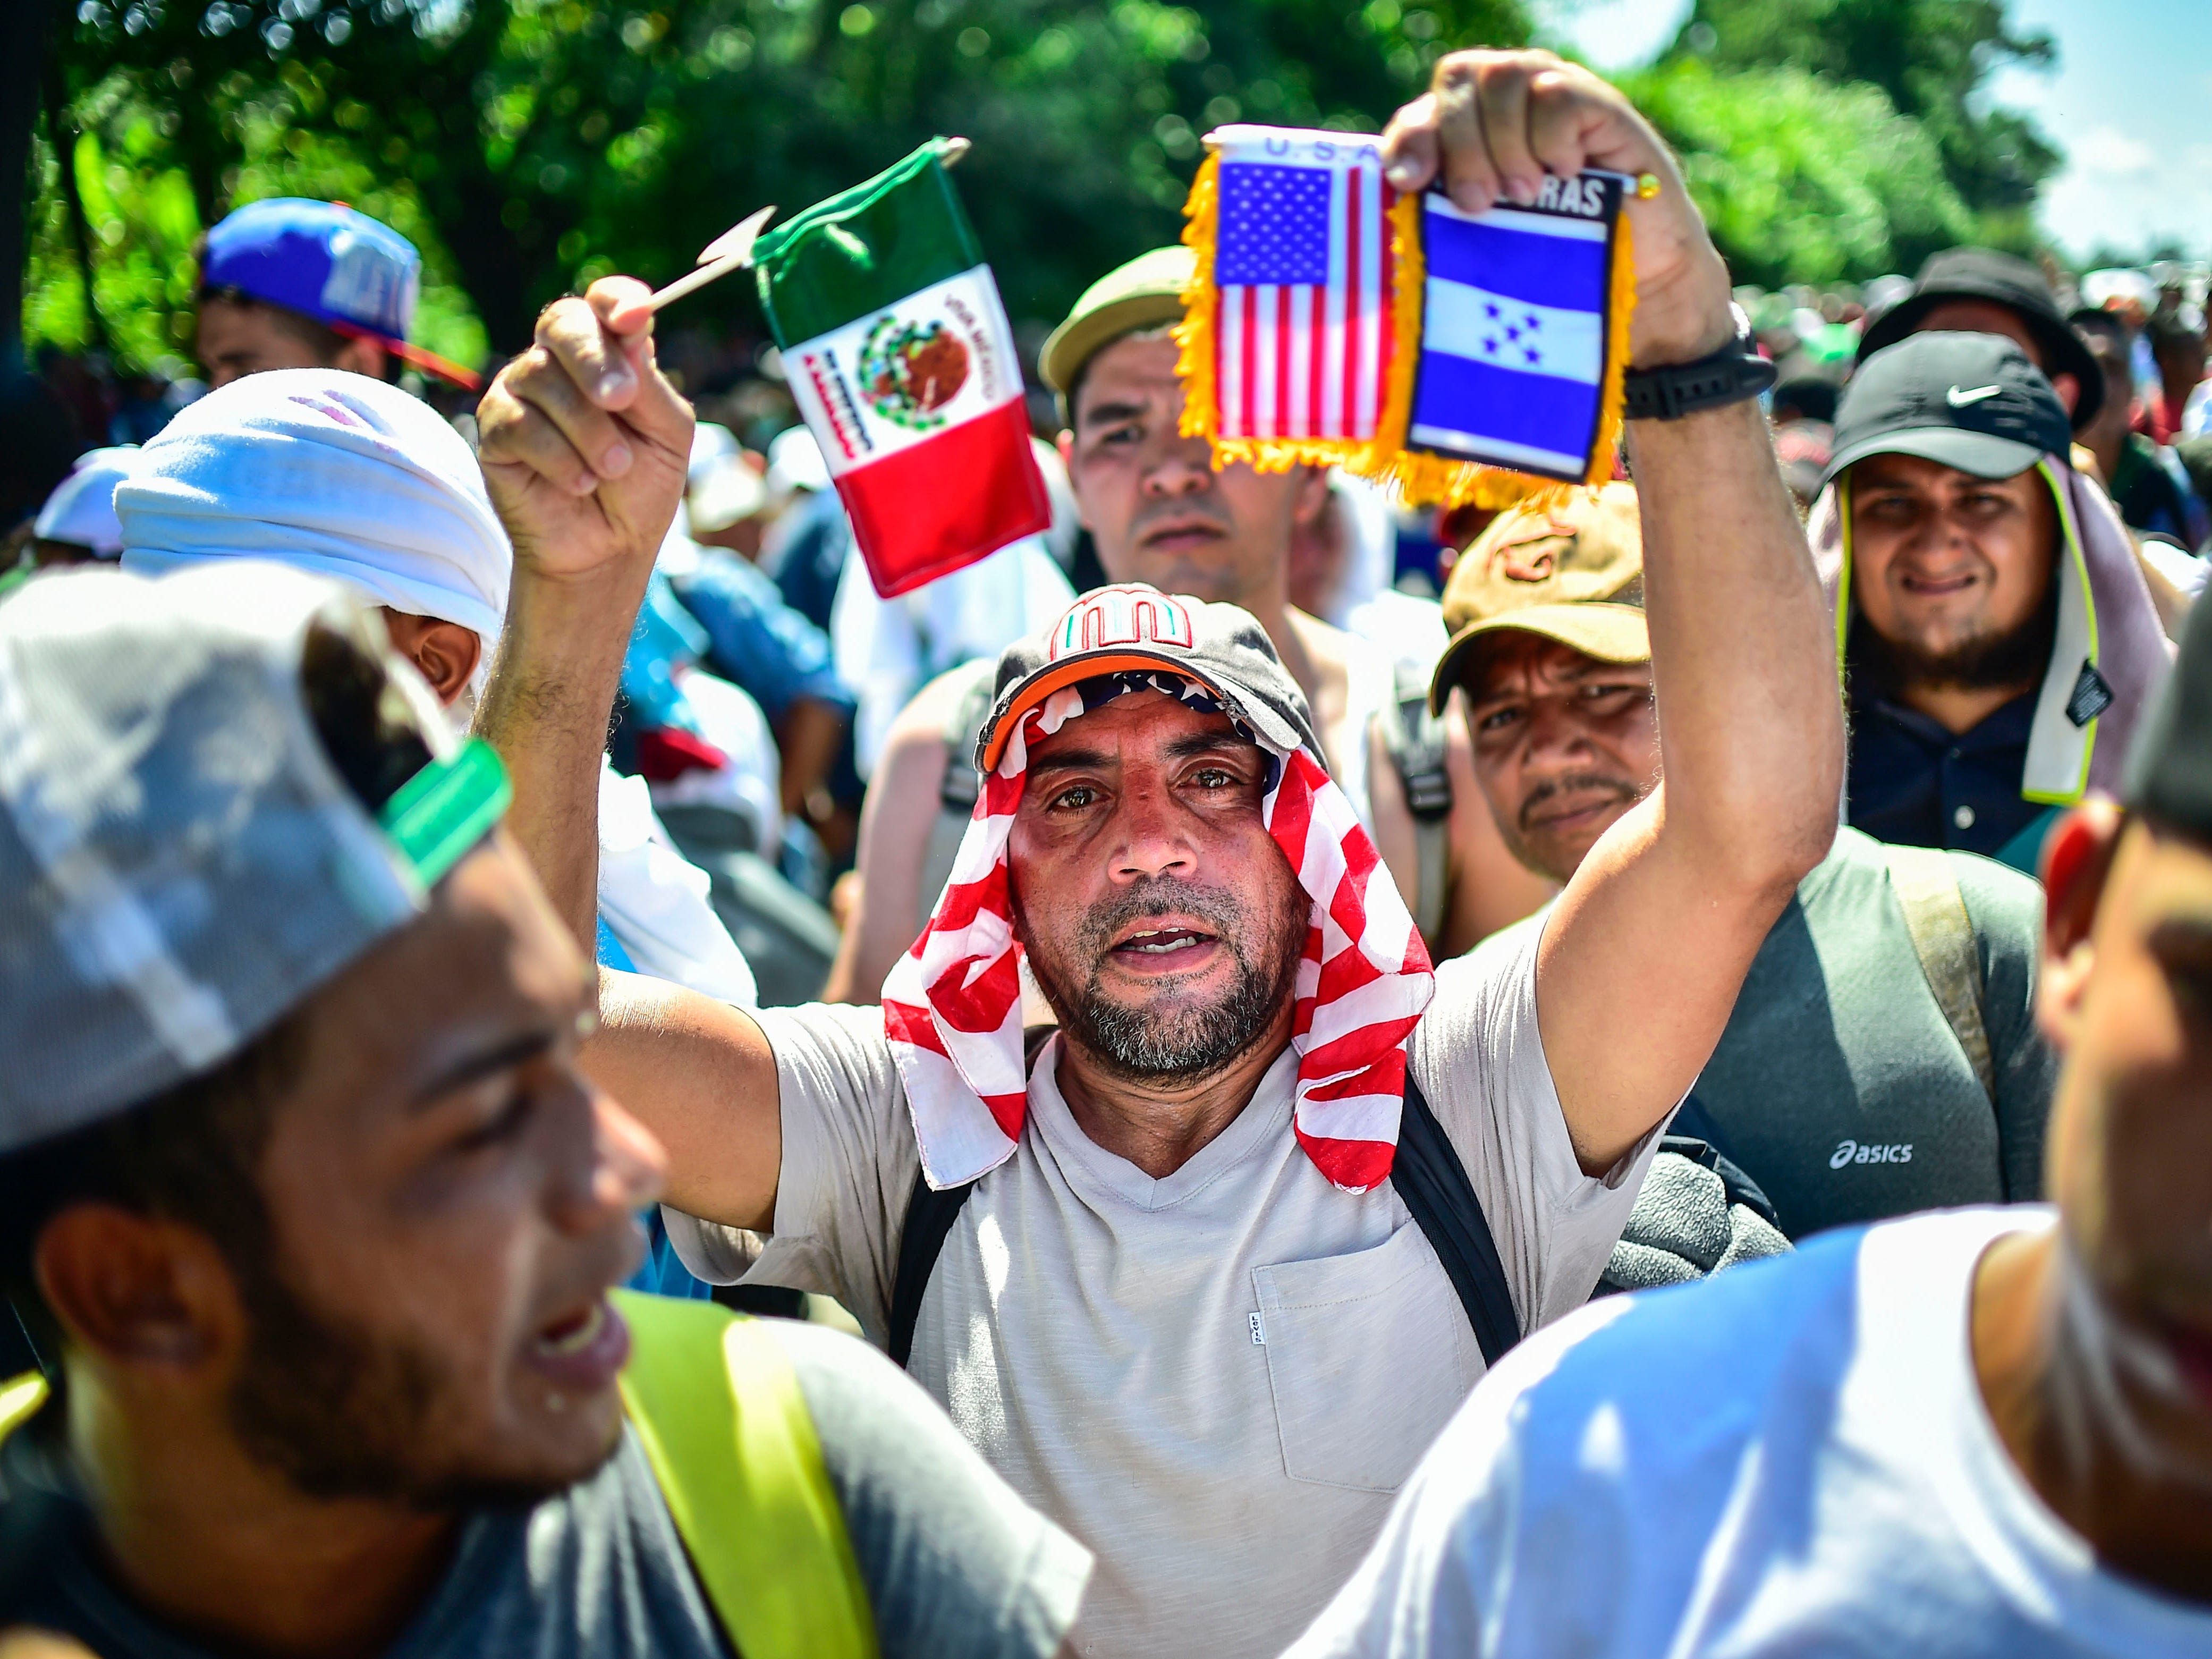 A migrant heading in a caravan to the US, holds Mexican, US and Honduran national flags on the road linking Ciudad Hidalgo and Tapachula, Chiapas state, Mexico, on October 21, 2018. - Thousands of Honduran migrants resumed their march toward the United States on Sunday from the southern Mexican city of Ciudad Hidalgo, AFP journalists at the scene said.